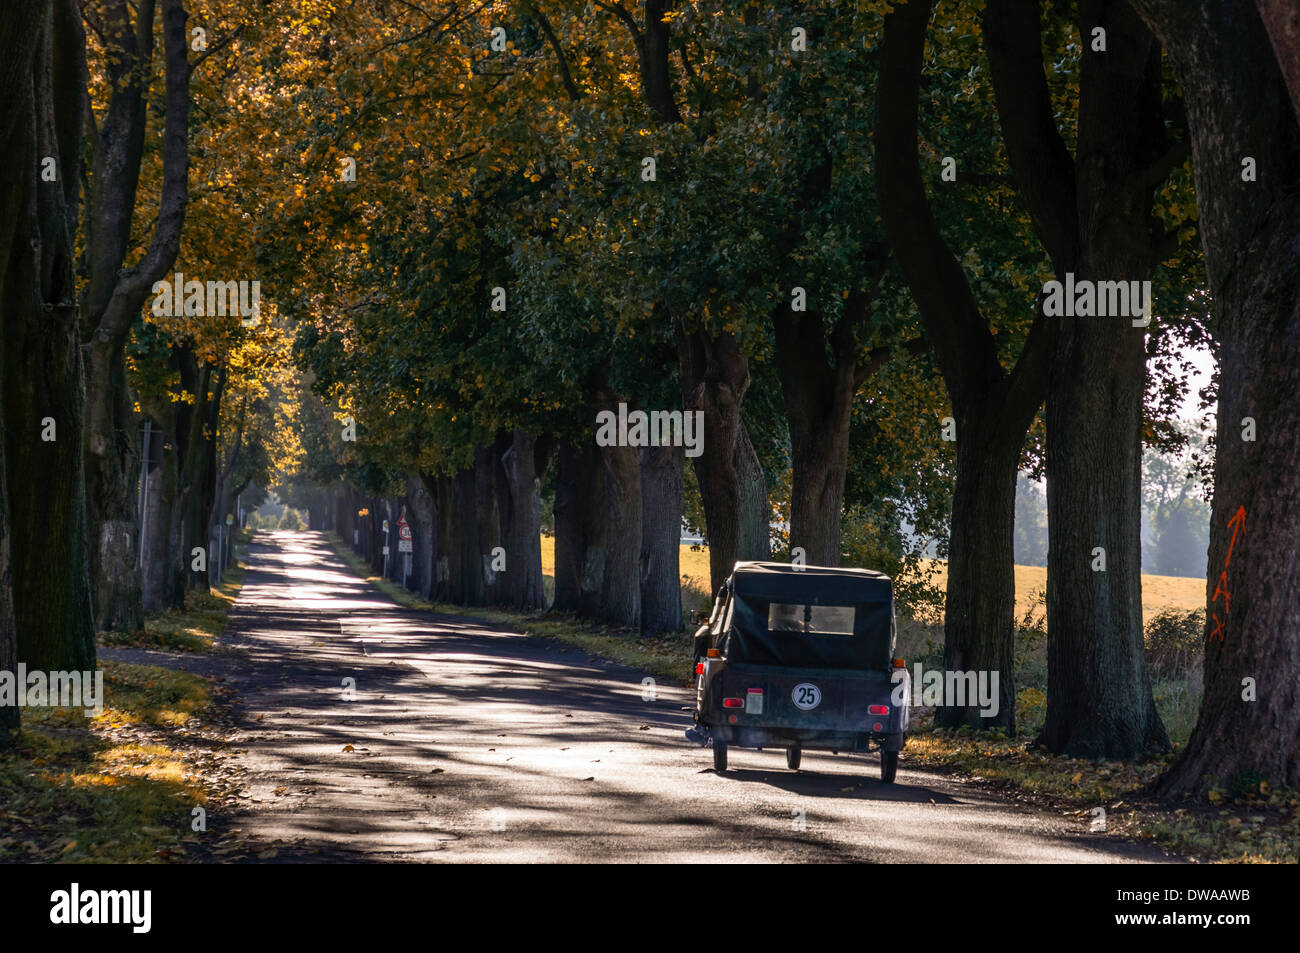 DDR Oldtimer Trike, Maple Alley near Ruedniz, Brandenburg, Germany - Stock Image